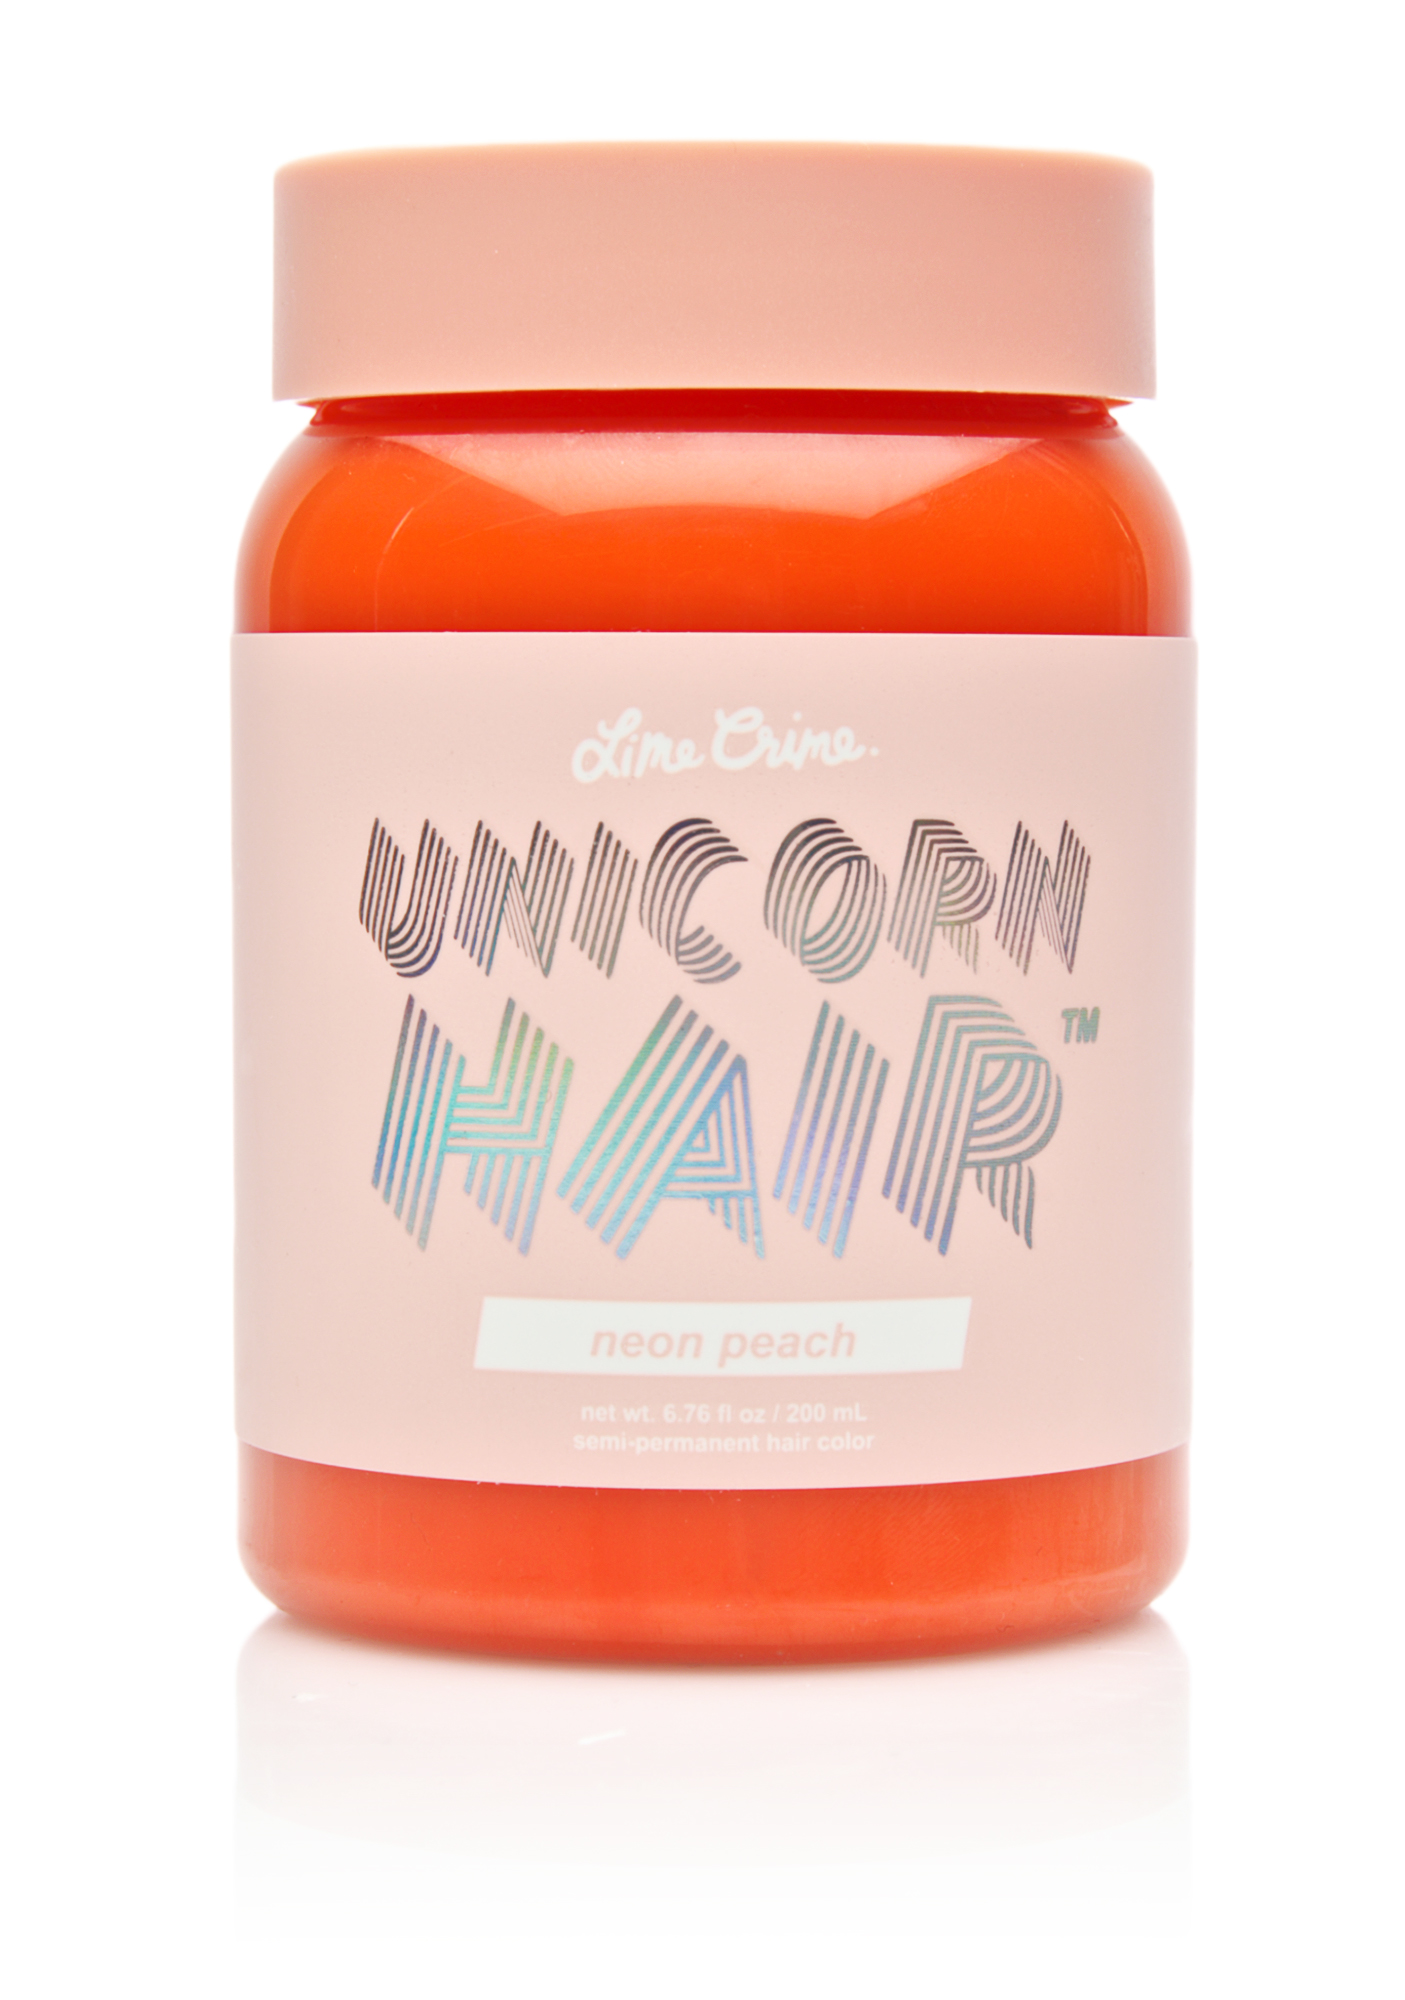 Lime Crime Neon Peach Unicorn Hair Dye